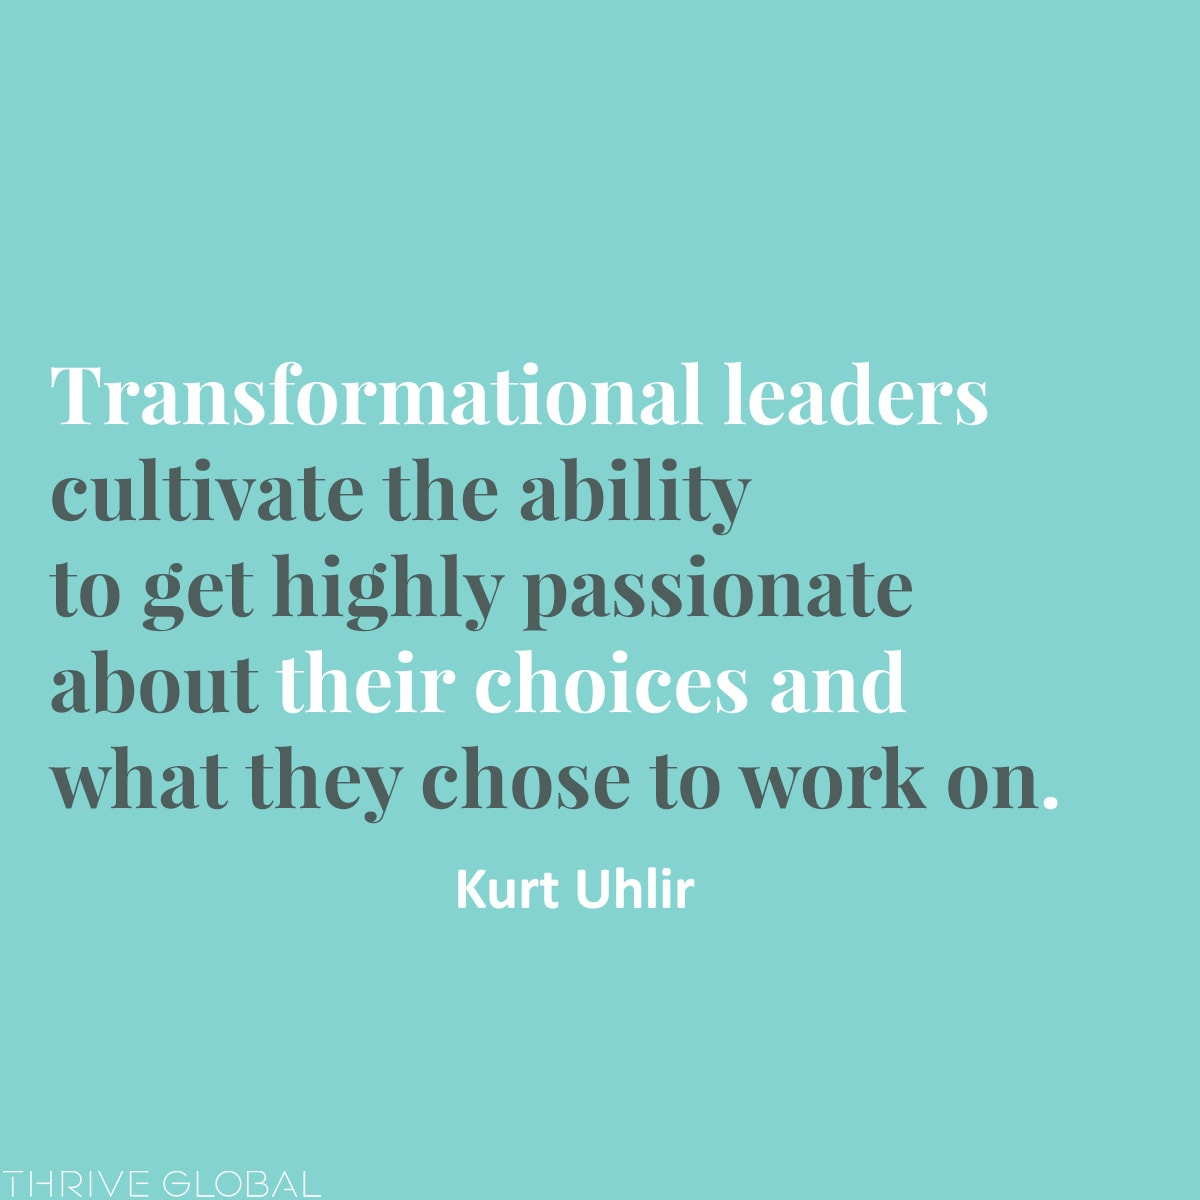 Transformational leaders cultivate the ability to get highly passionate about their choices and what they chose to work on.